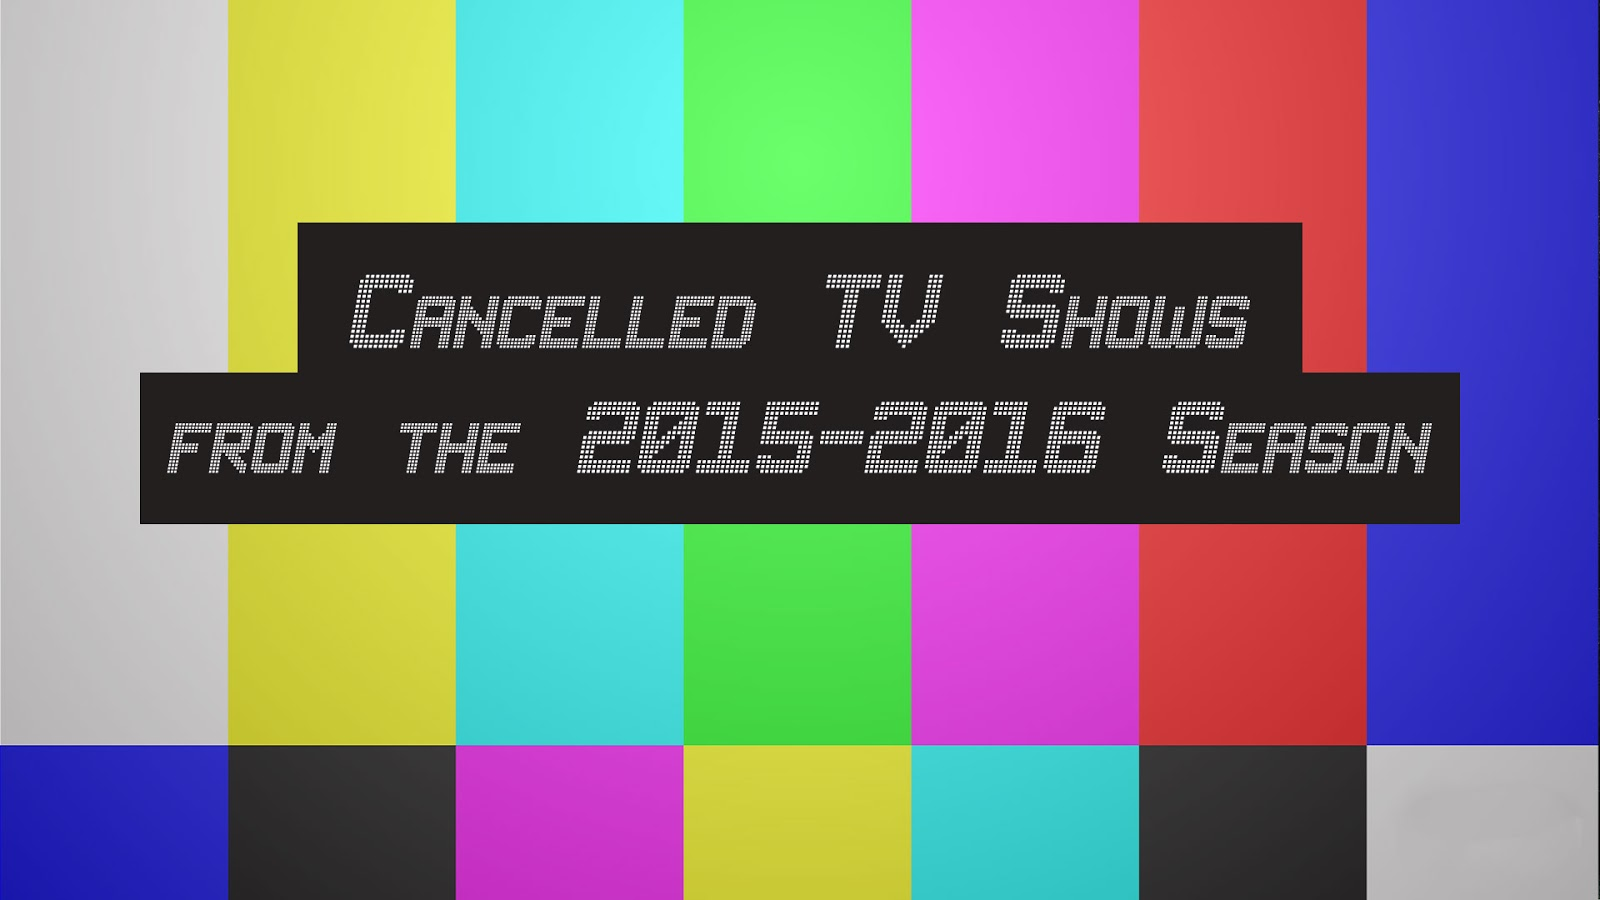 May 2016 TV show renew or cancel